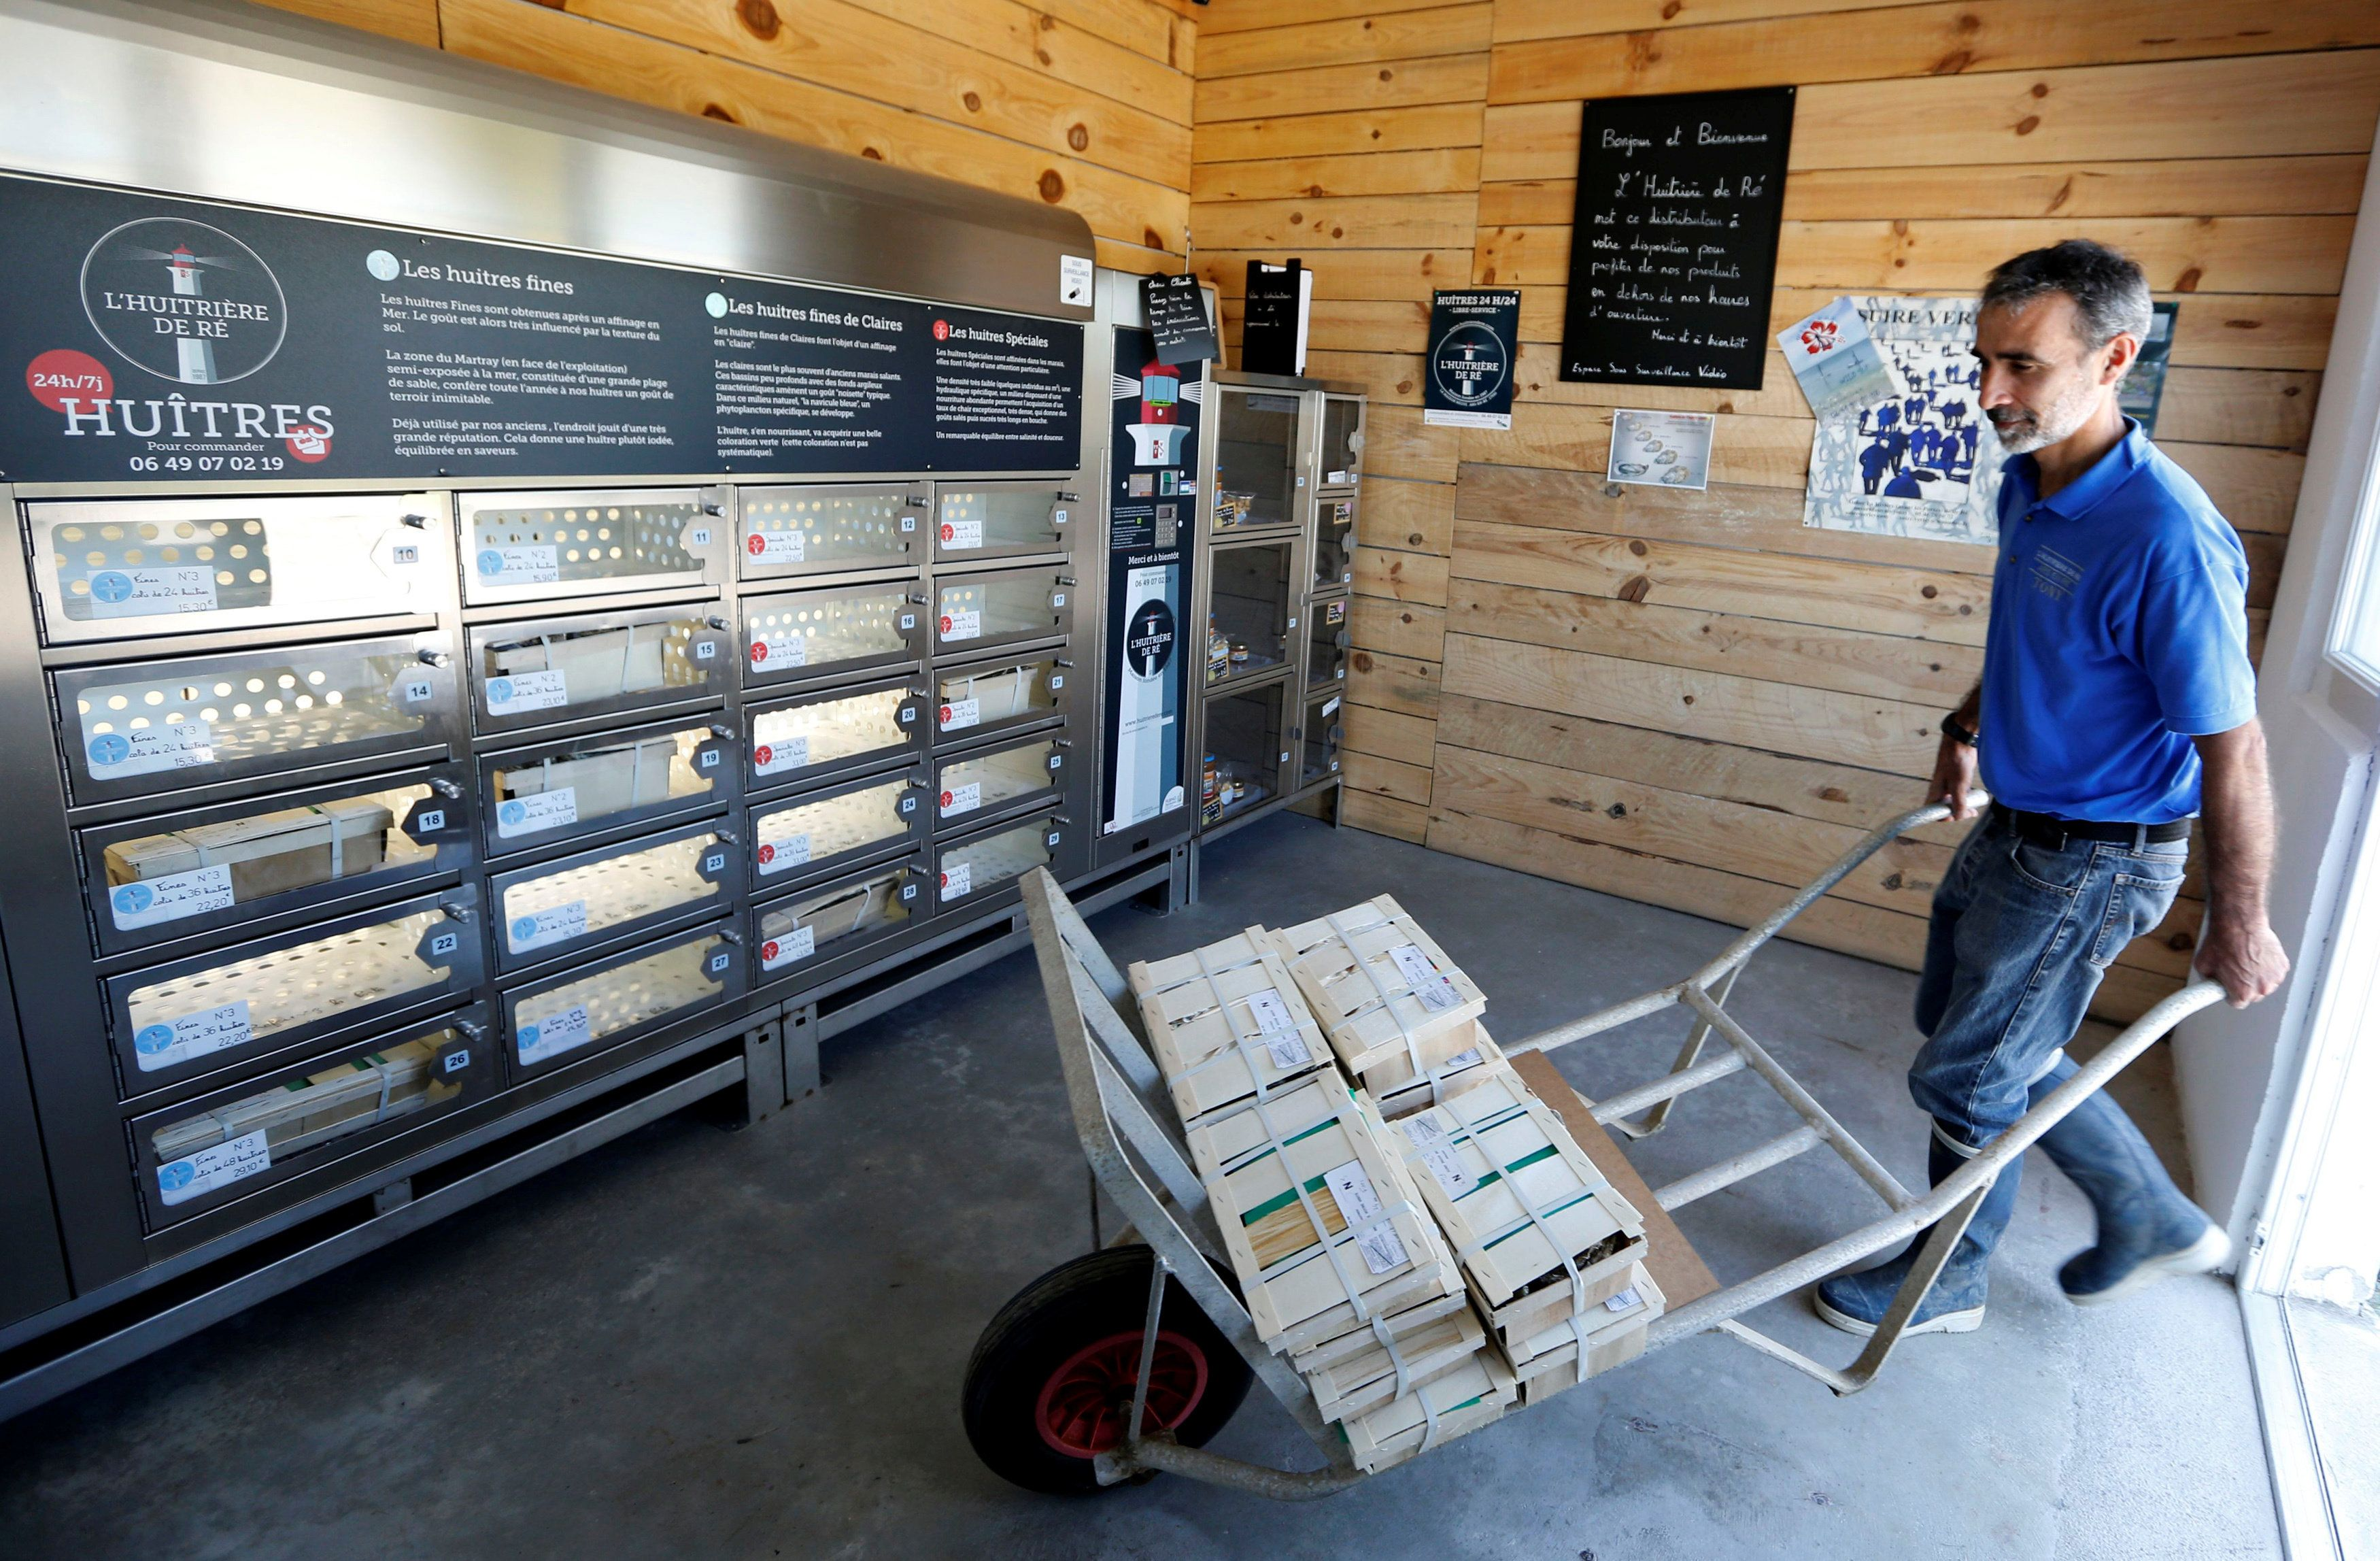 Tony Berthelot arrives with oysters at l'huitriere de Re, where the automatic oyster vending machine is set, in France on Aug. 2.